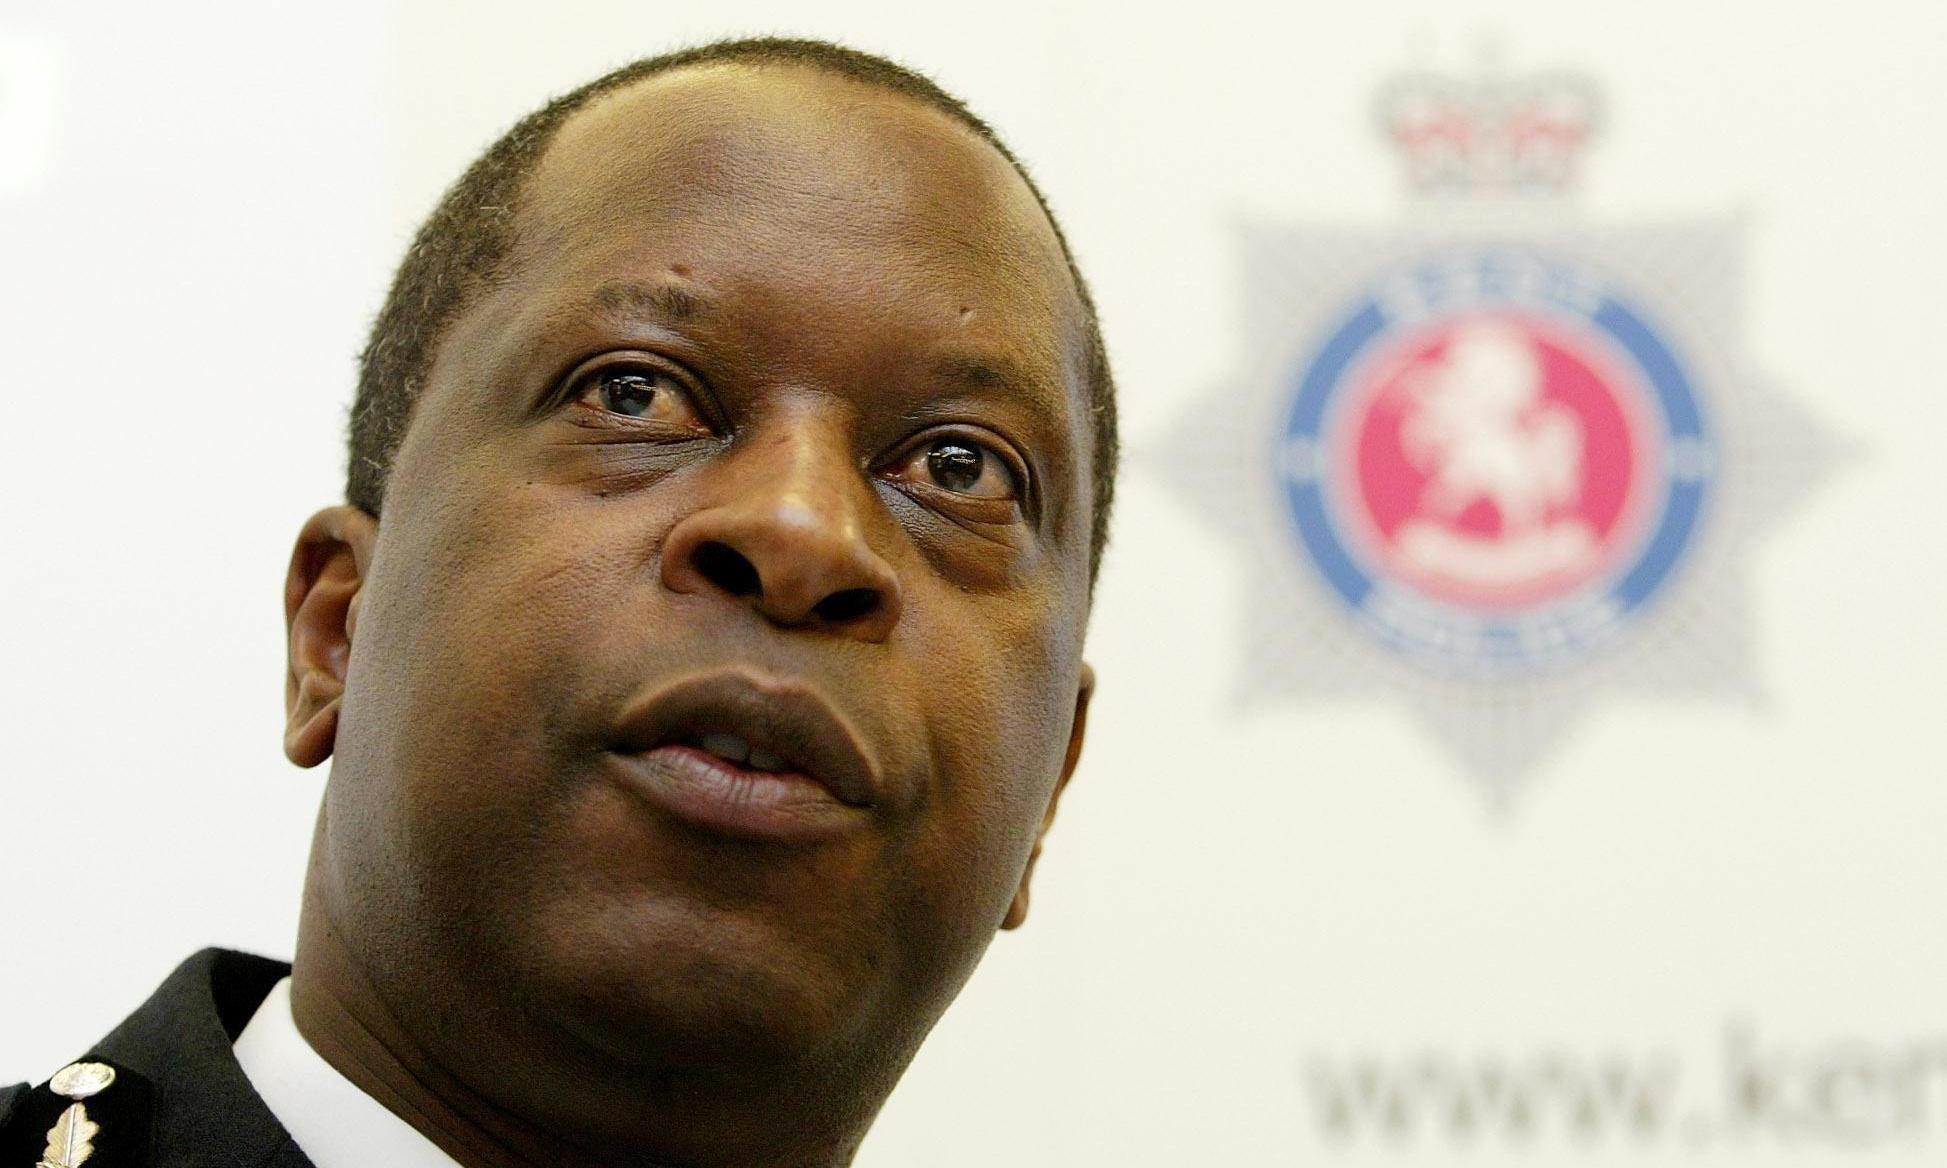 UK's first black police chief asks why he remains the only one